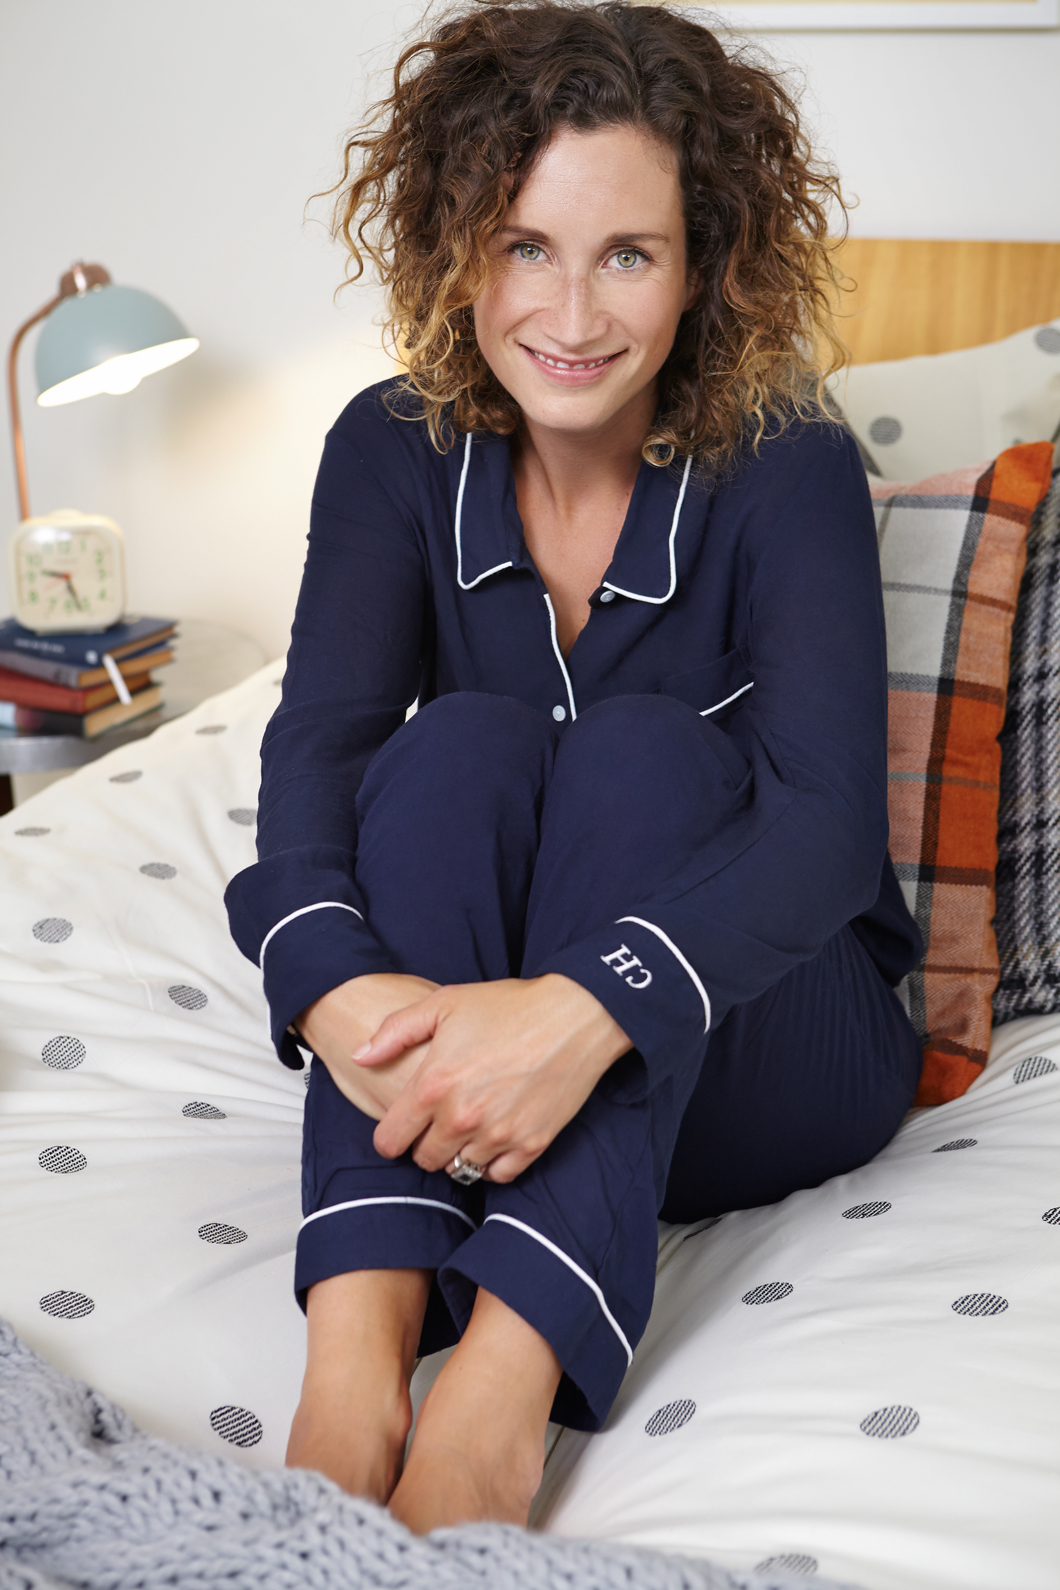 masini-and-chern-pajamas-sleepwear